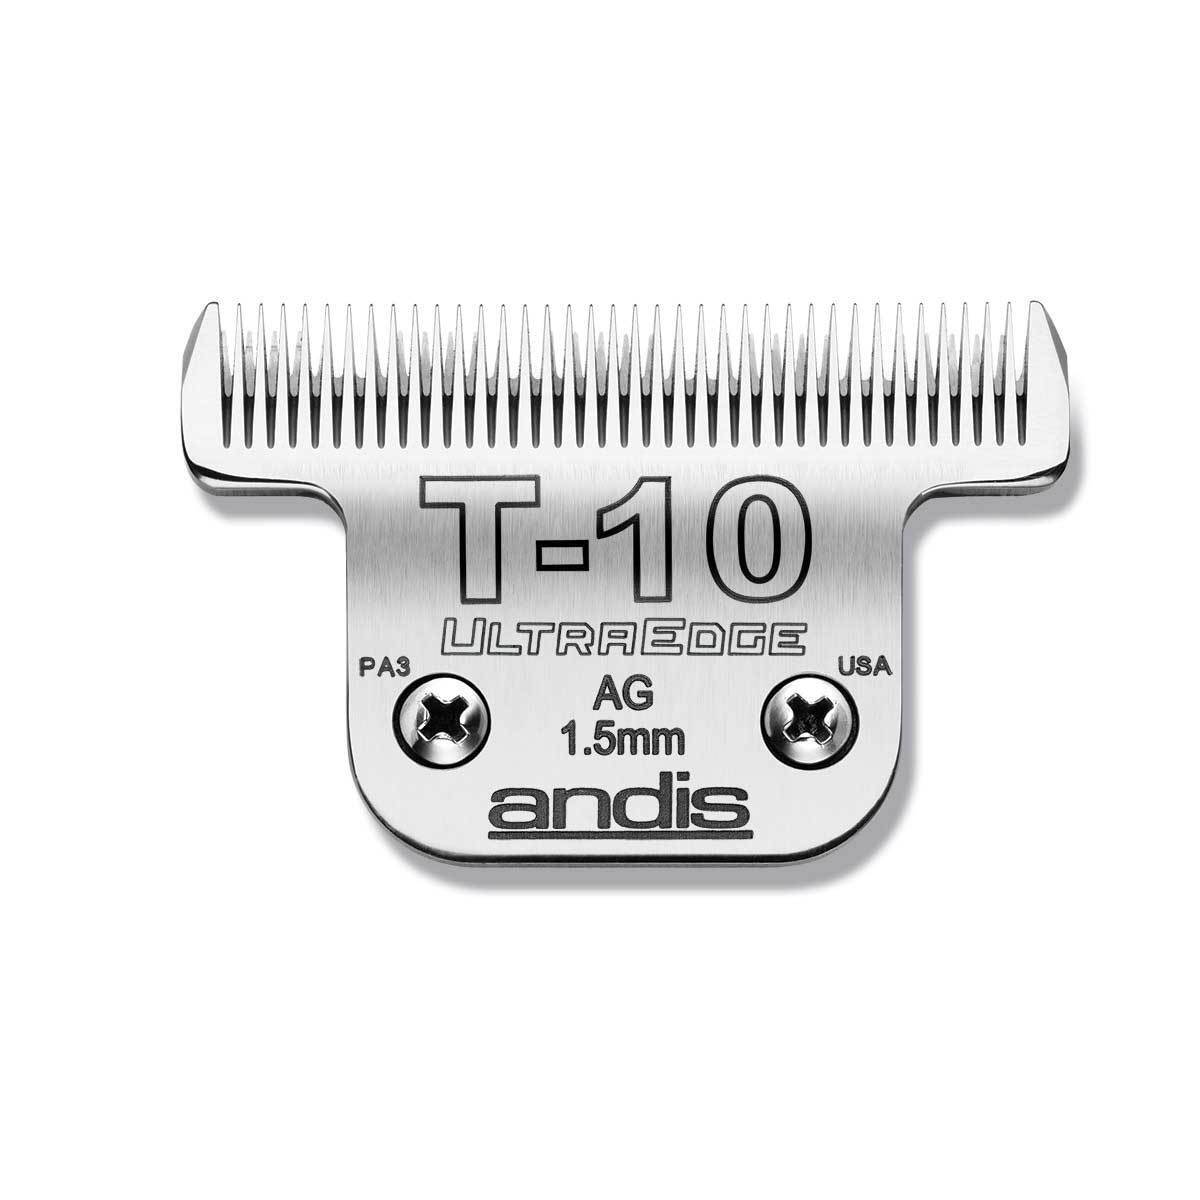 Professional Professional Professional High Quality Dog Grooming Ultra Edge Clipper Blades Choose Dimensione be98b4